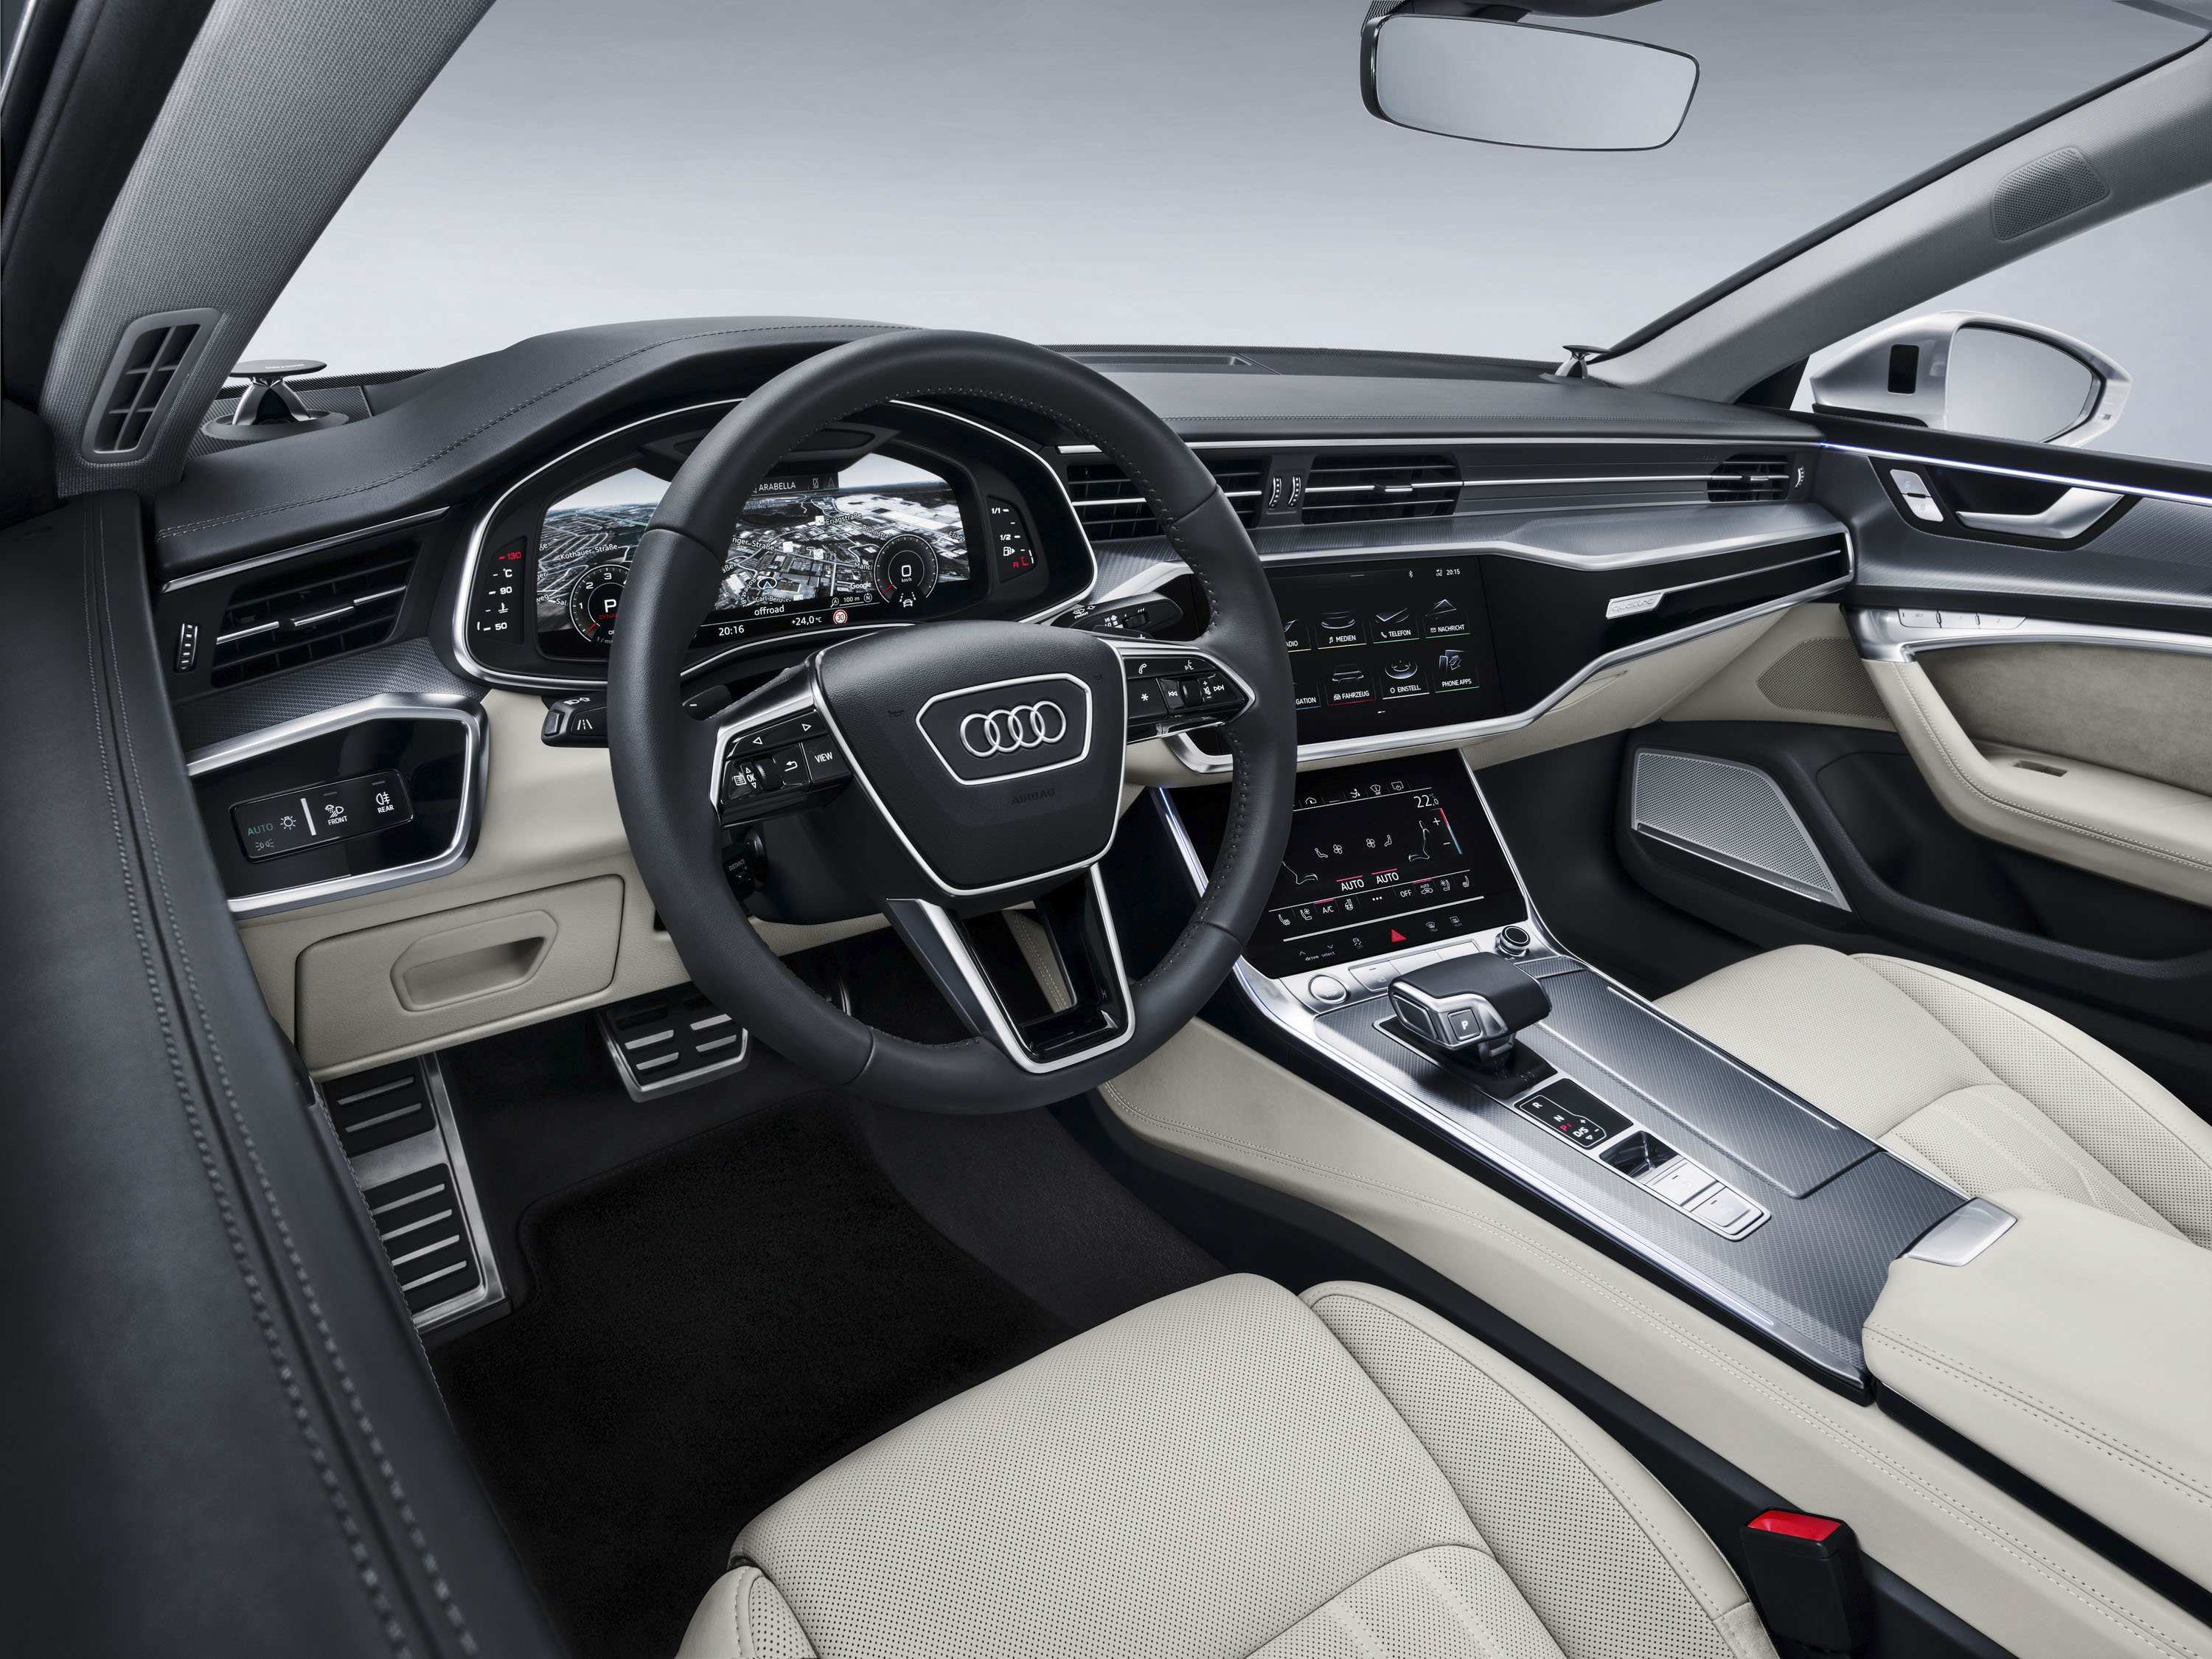 70 All New 2019 Audi A7 0 60 Configurations for 2019 Audi A7 0 60